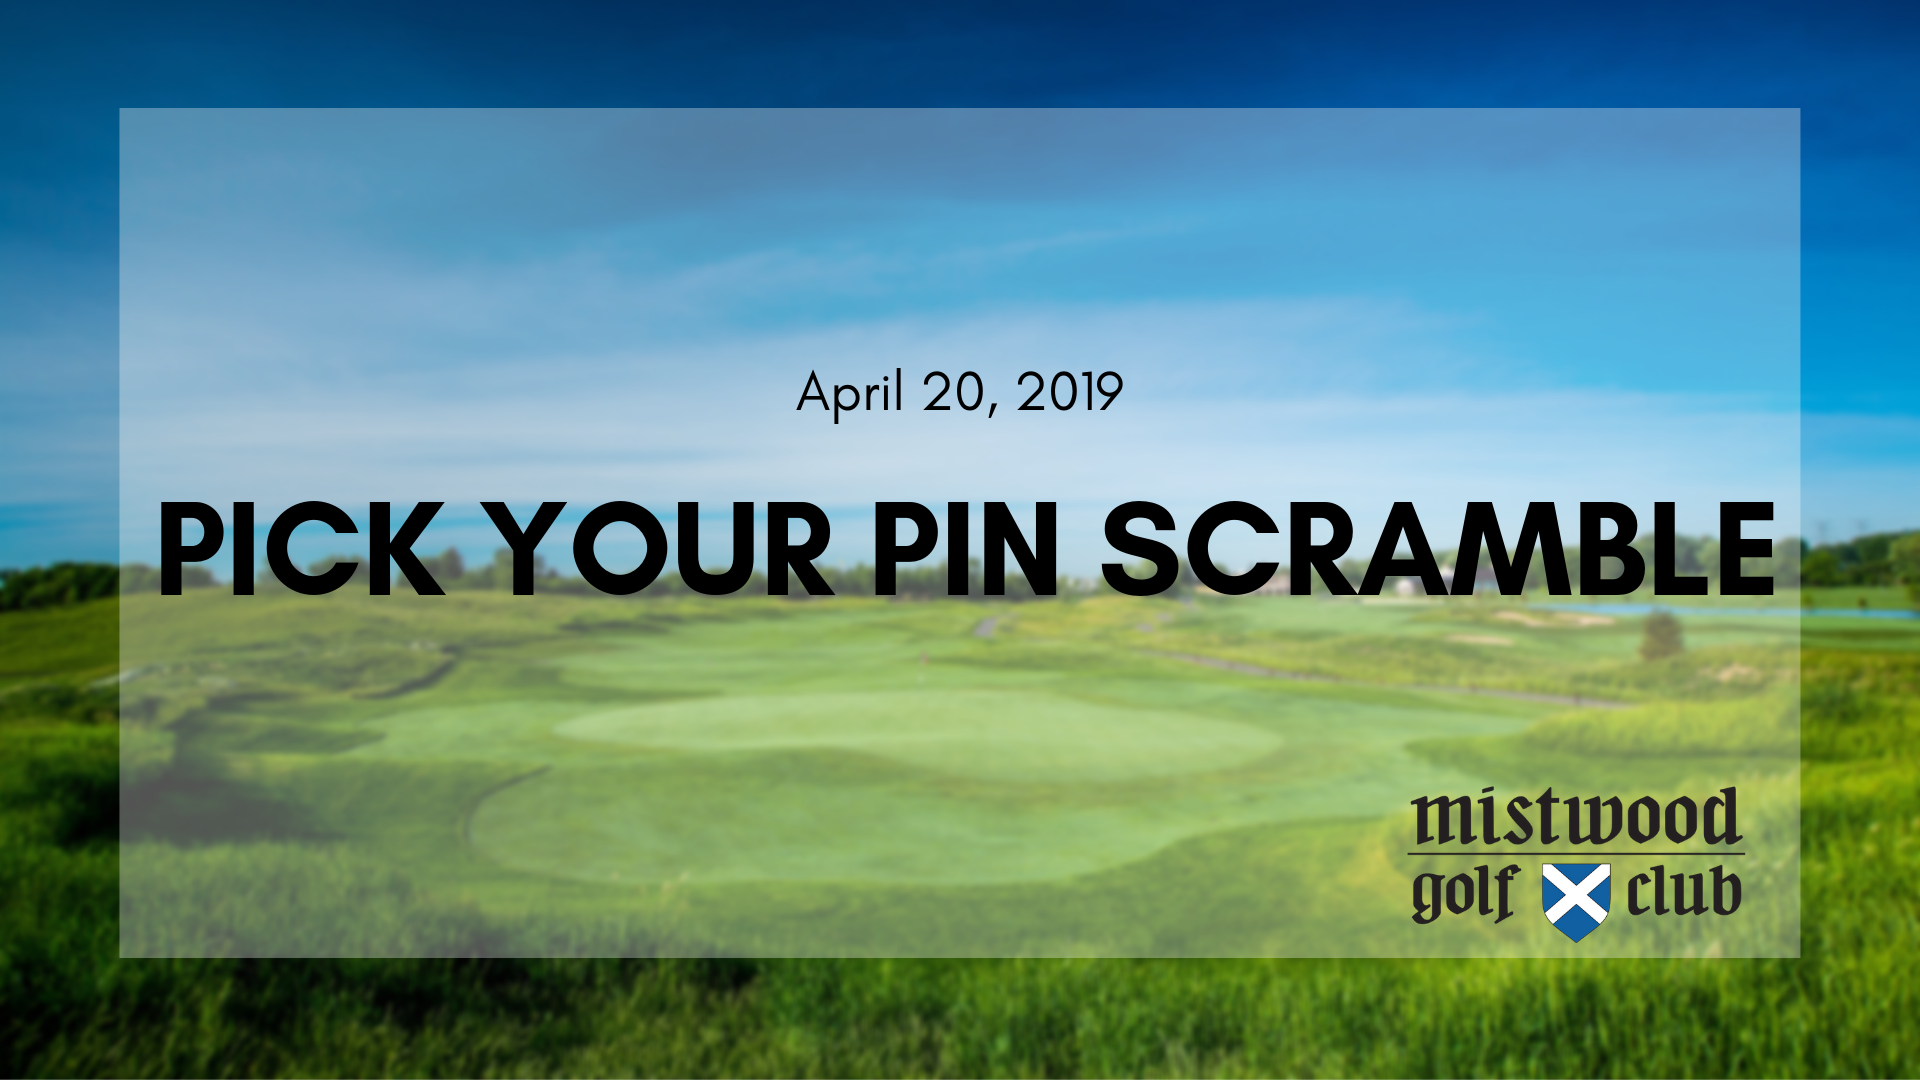 PICK YOUR PIN SCRAMBLE